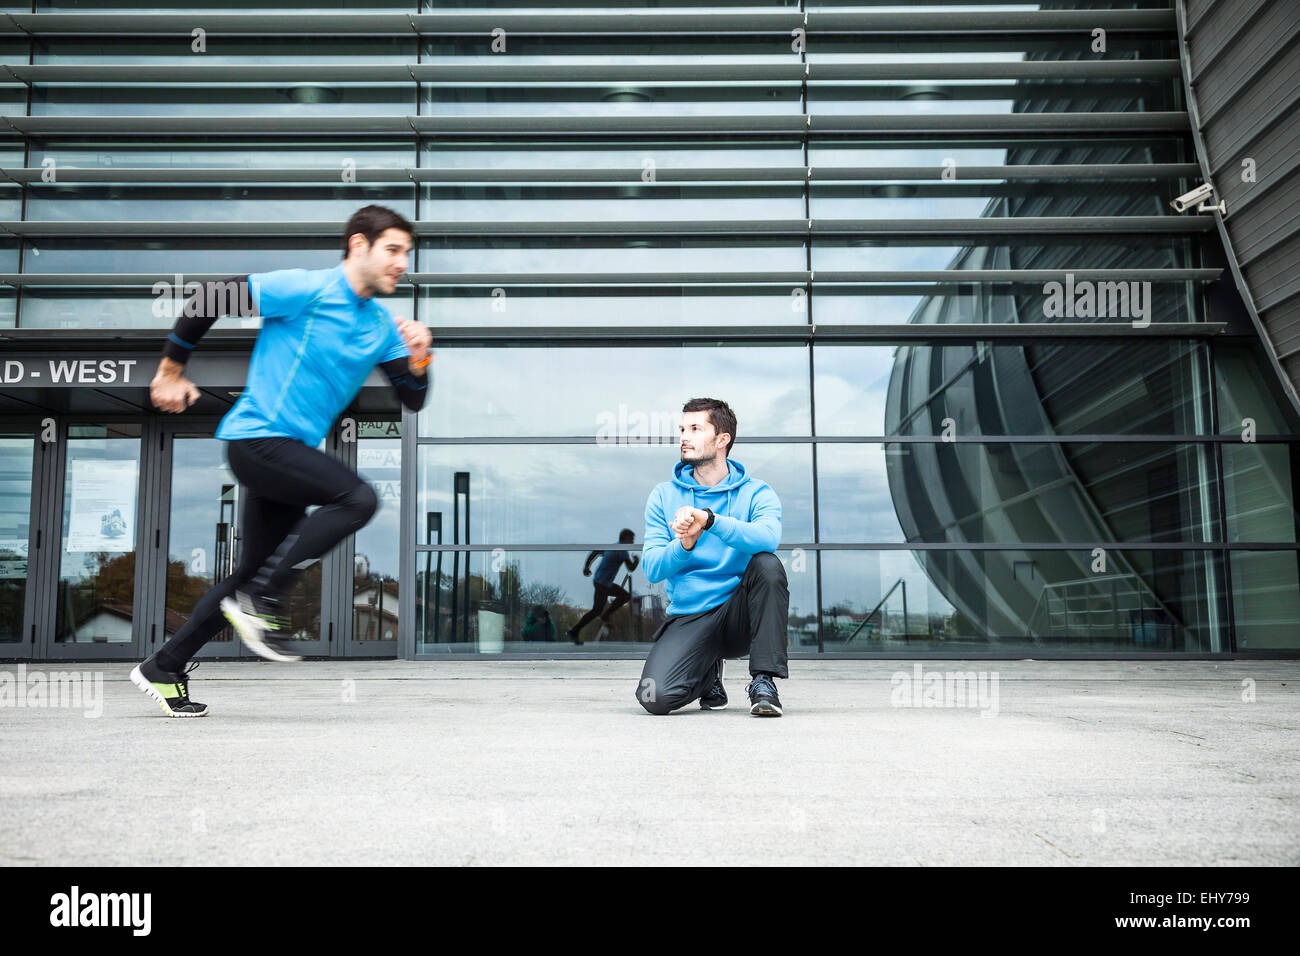 Coureurs homme faire entraînement de sprint en ville Photo Stock